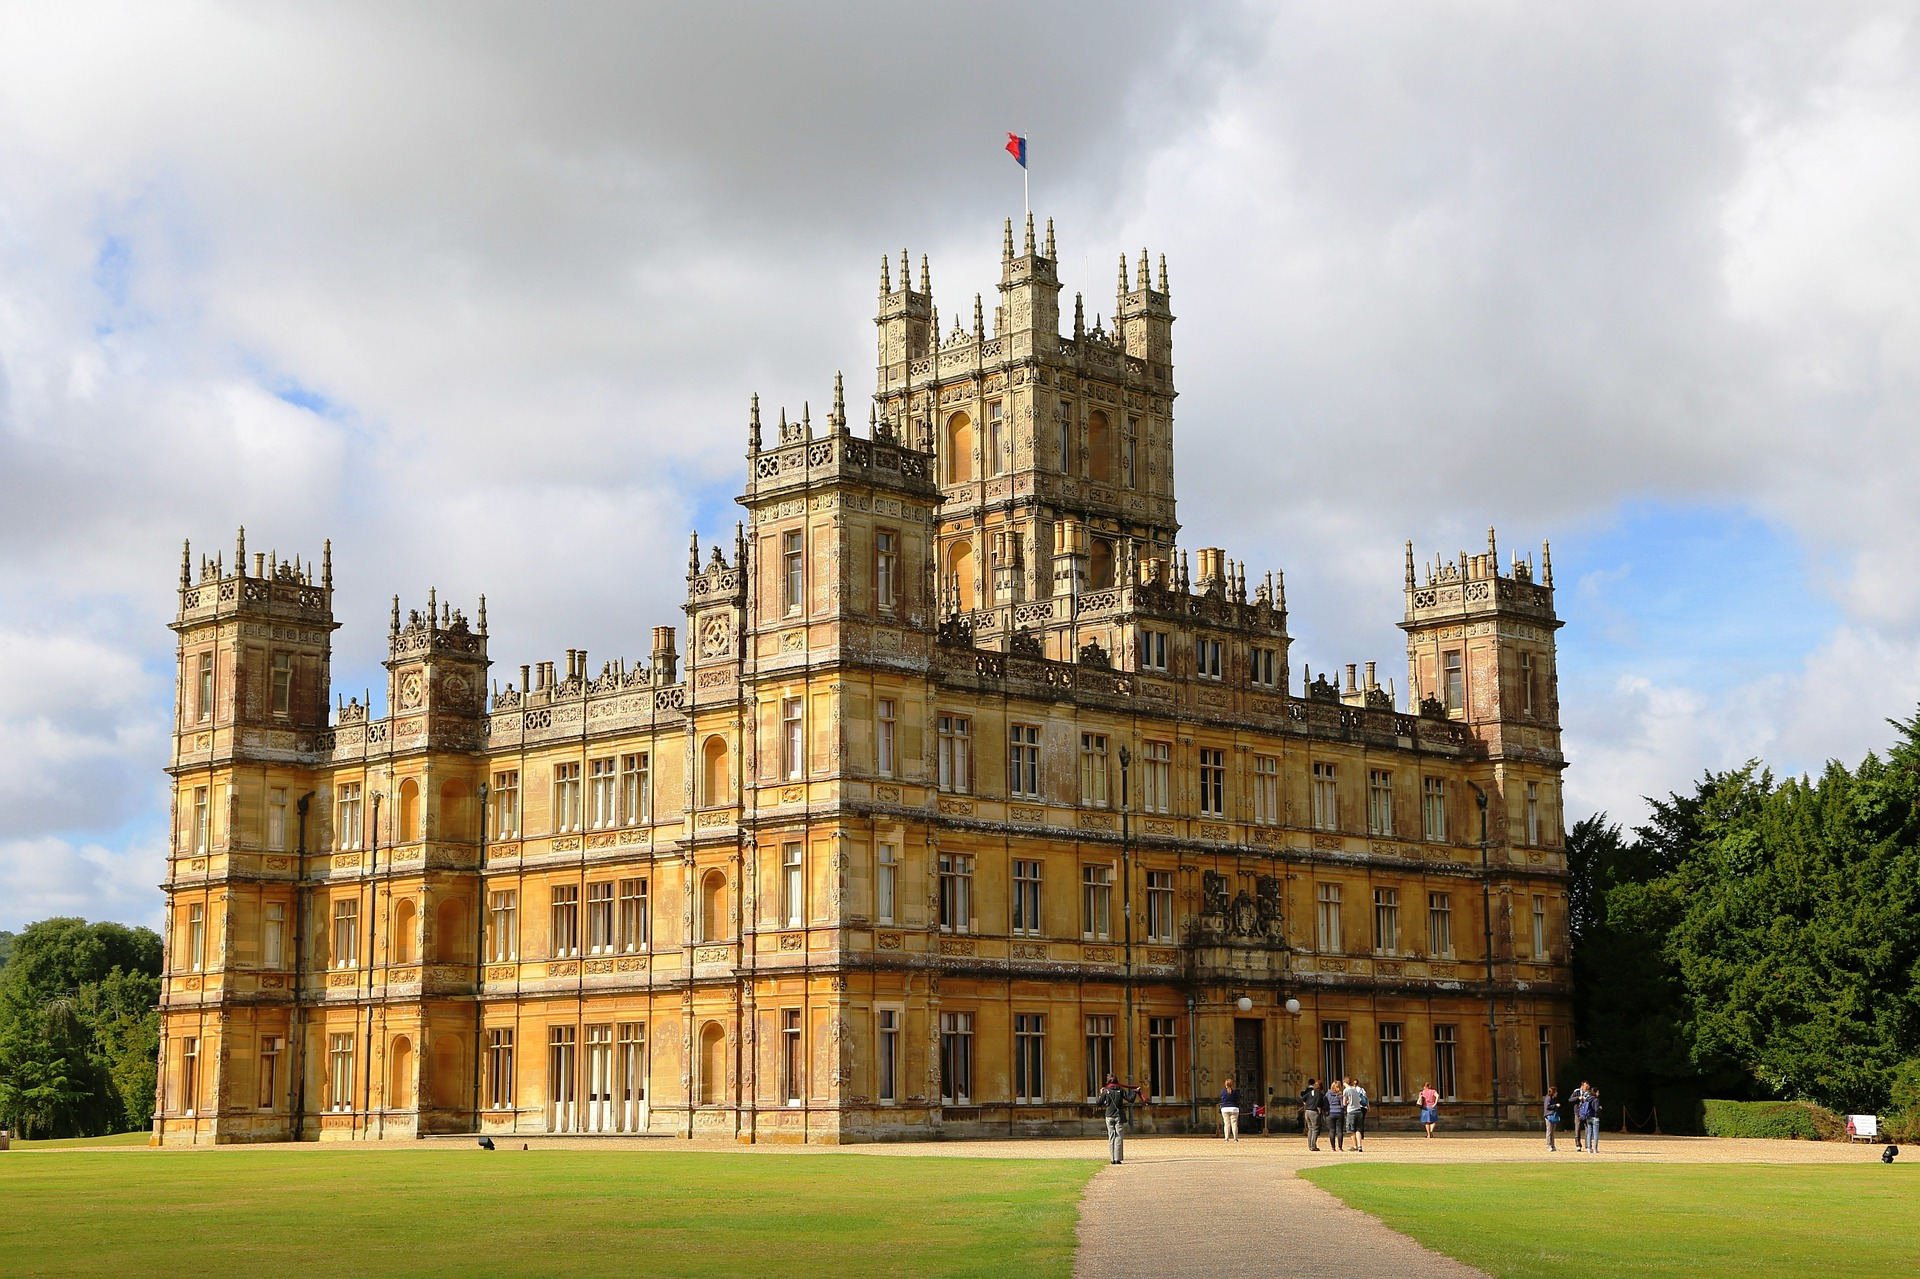 Famous Highclere castle, filming location for the popular PBS series, Downton Abbey.